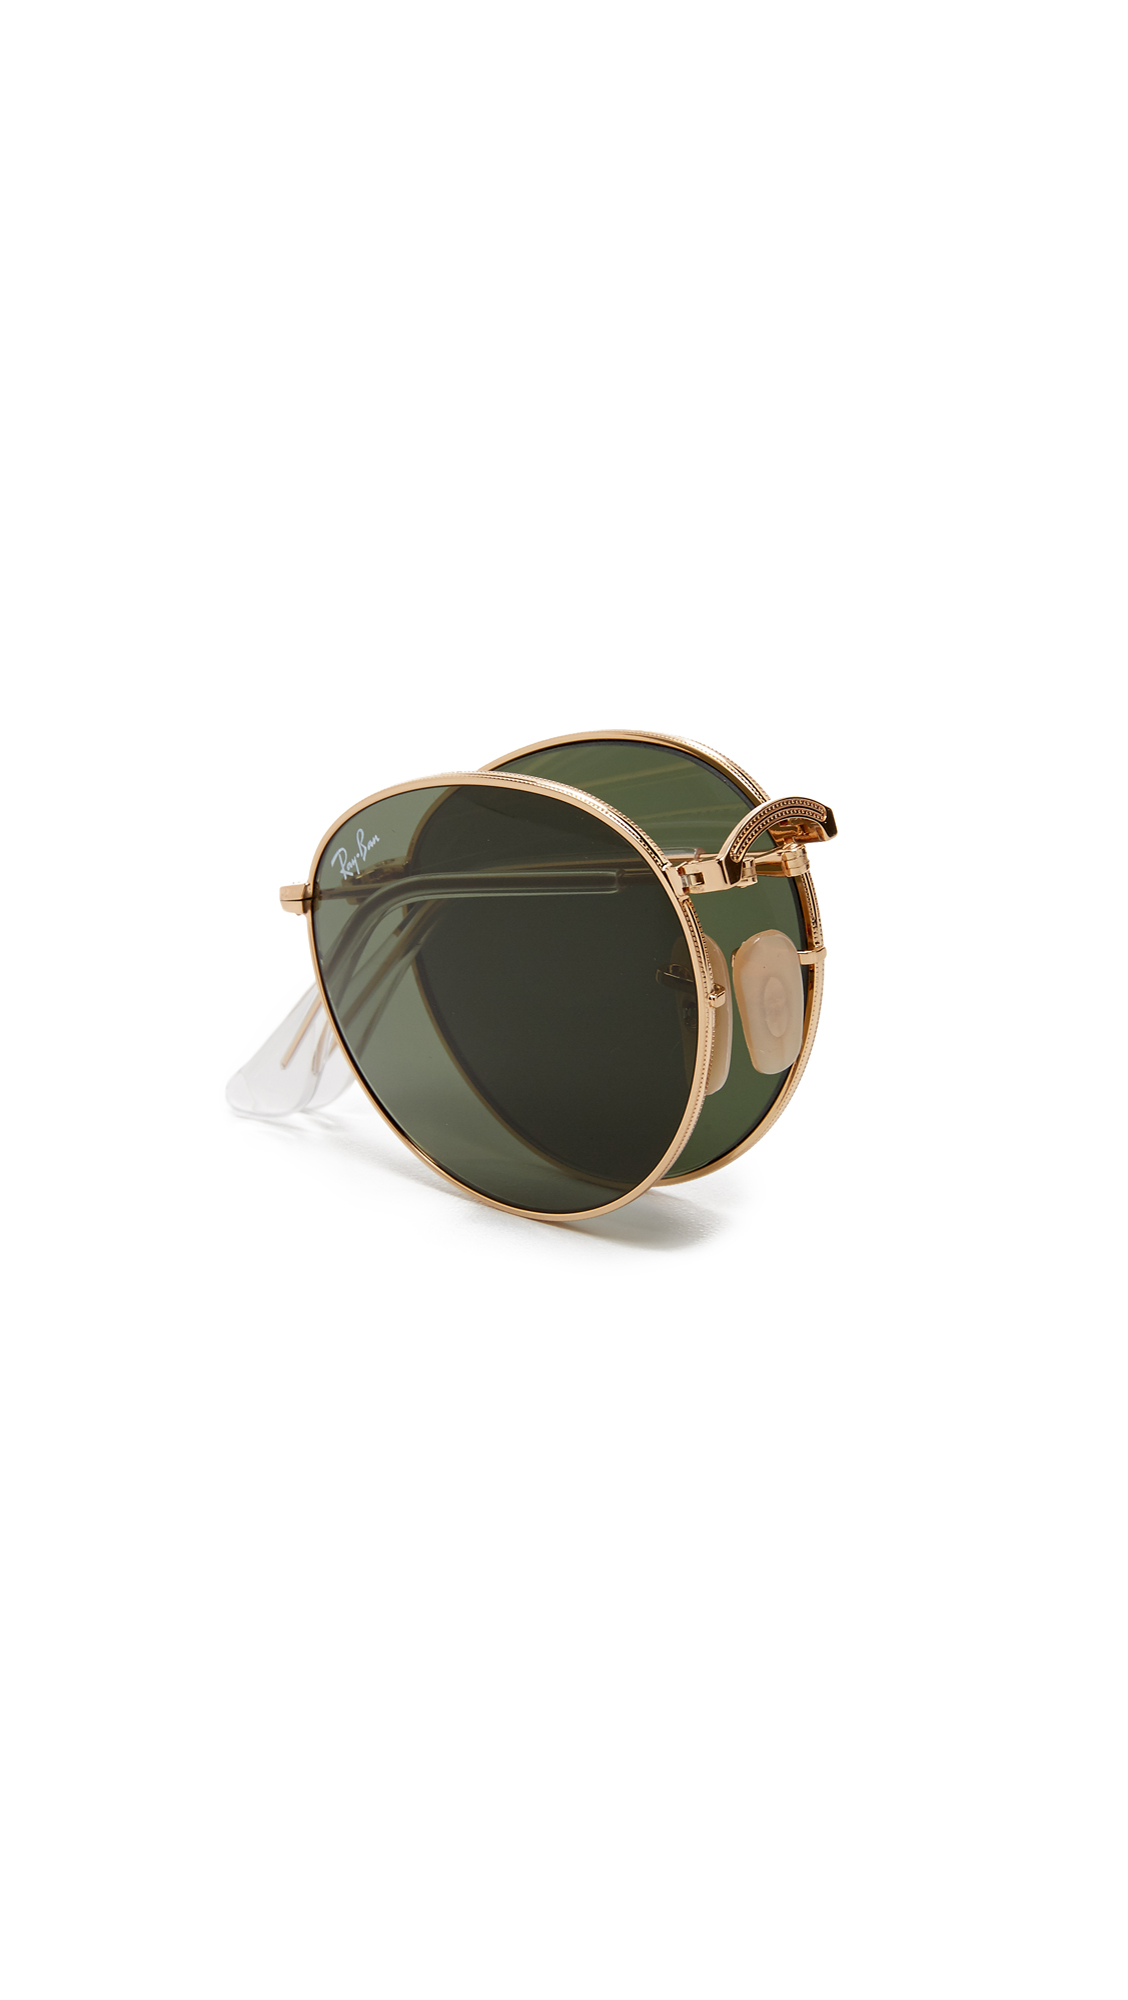 6c5a175b7 Ray-Ban RB3532 Icons Round Sunglasses | SHOPBOP